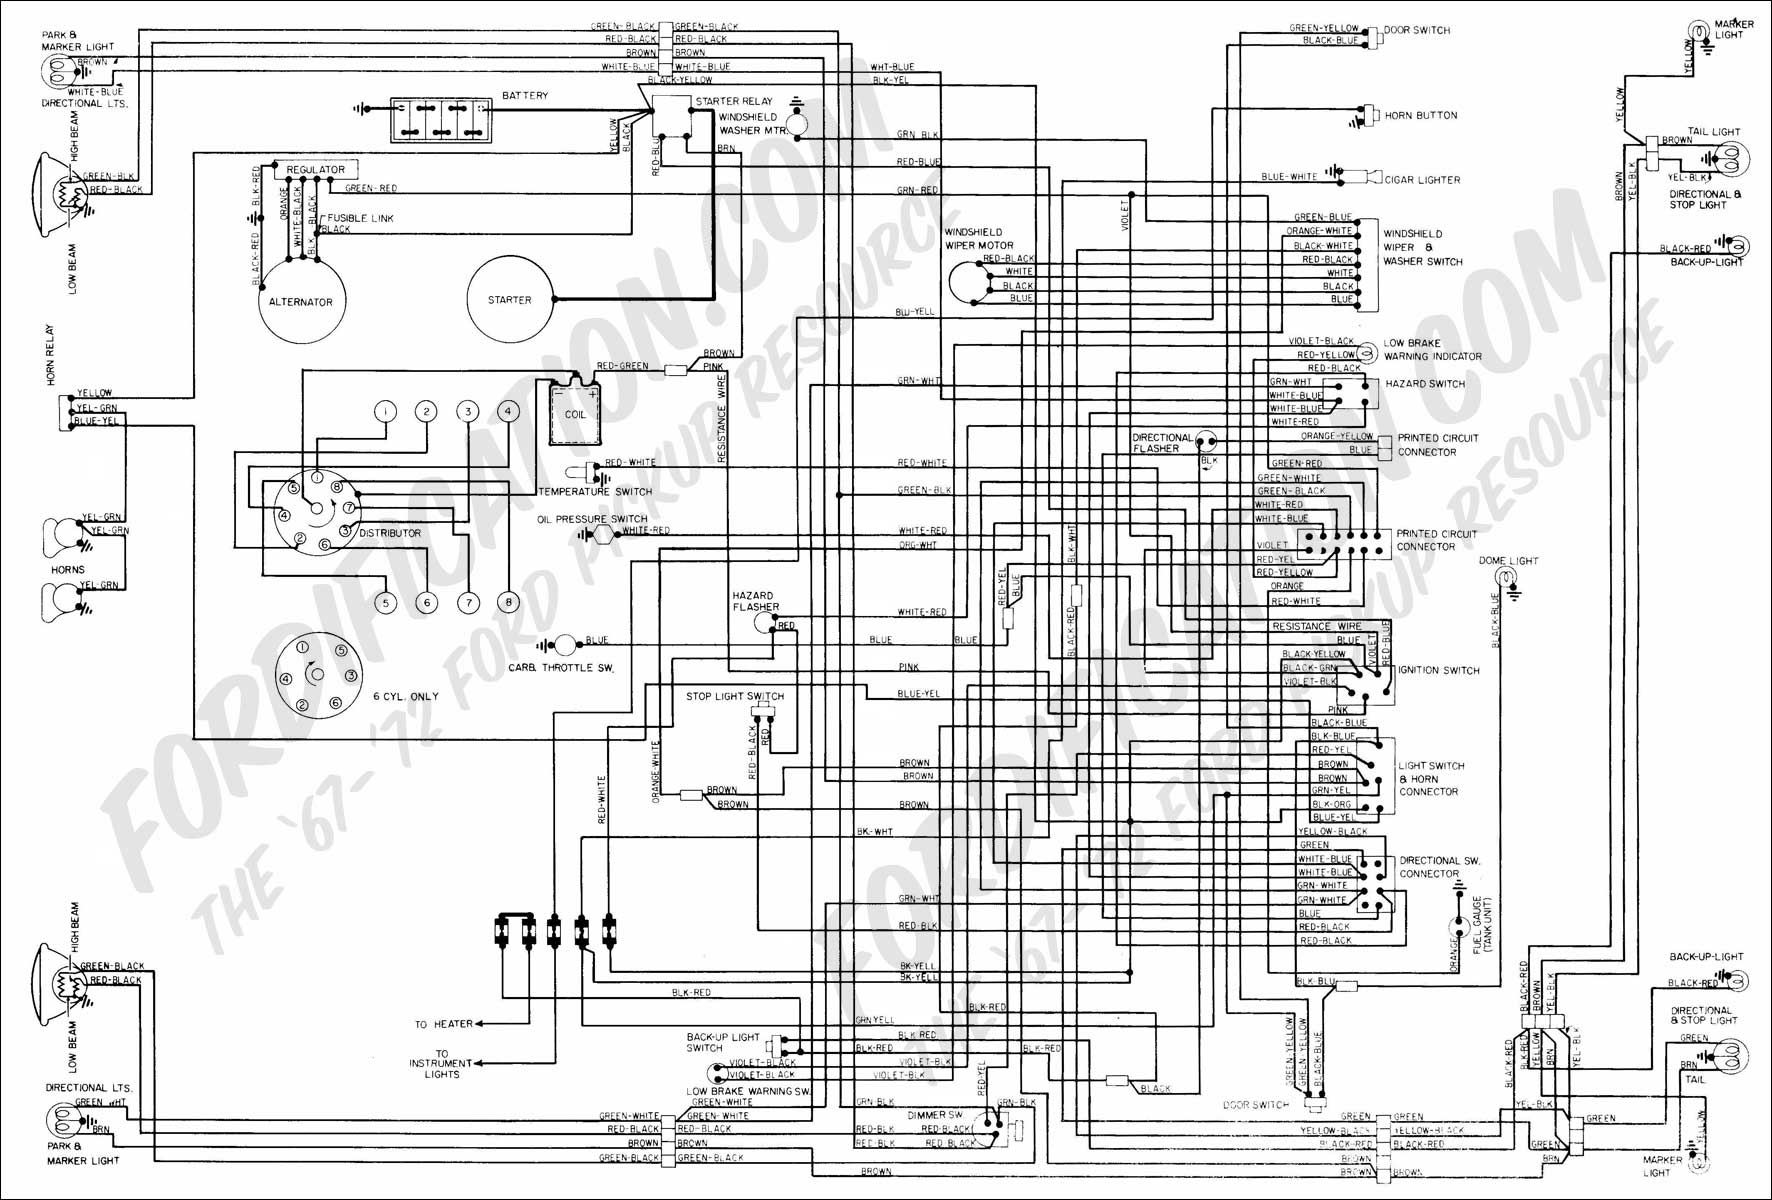 hight resolution of 1992 ford e250 wiring diagram wiring diagram article review 1992 ford e250 wiring diagram